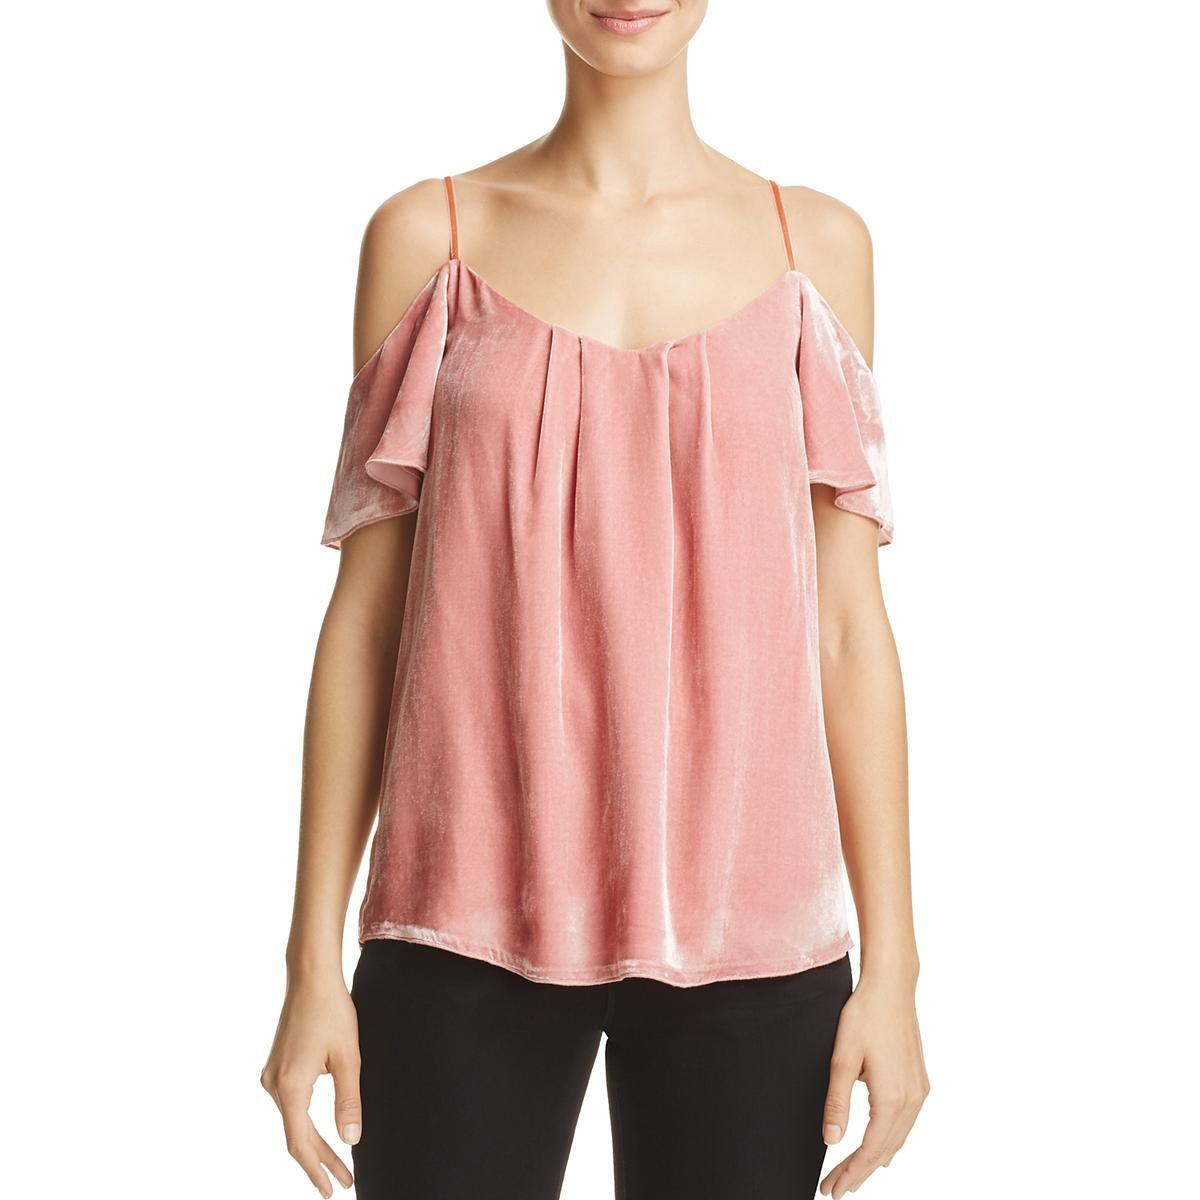 7c81db116ee4 joie-Dusty-Rose-Womens-Adorlee-G-Silk-Cold-Shoulder-Camisole-Top.jpeg